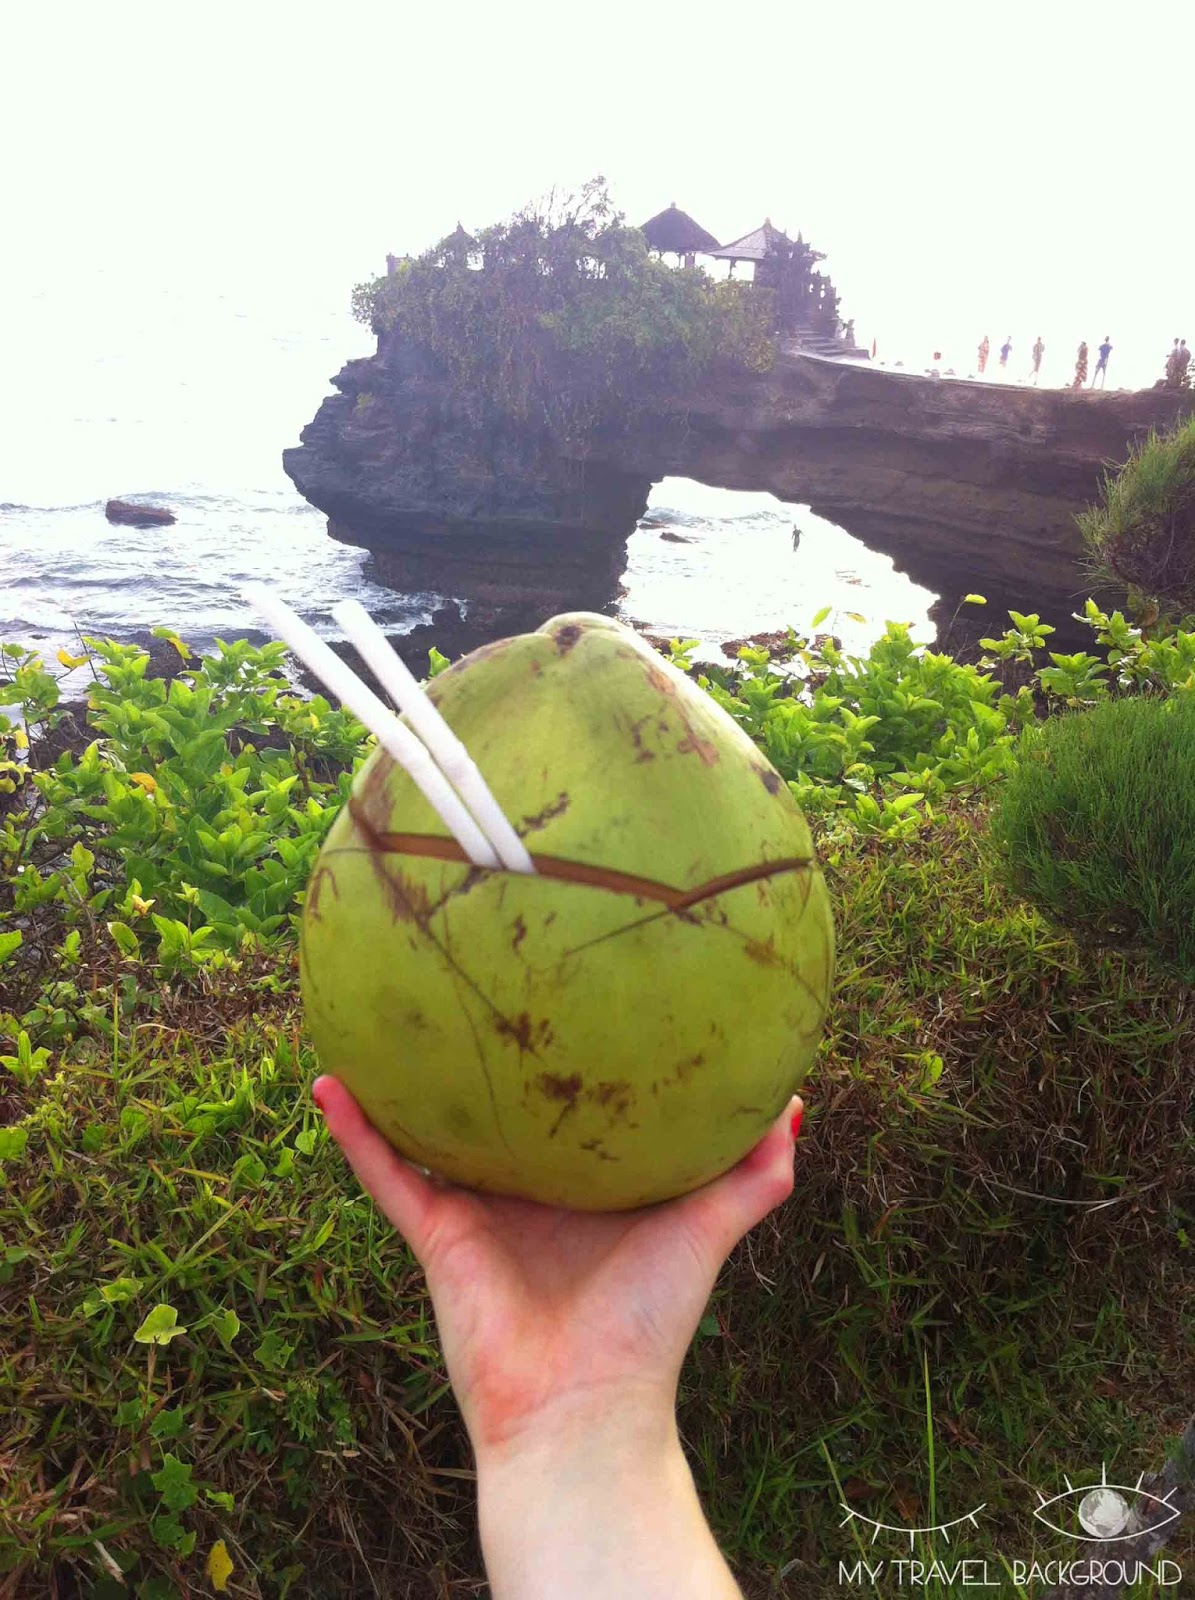 My Travel Background : A la découverte de Kuta et du Sud de Bali - Noix de Coco à Tanah Lot